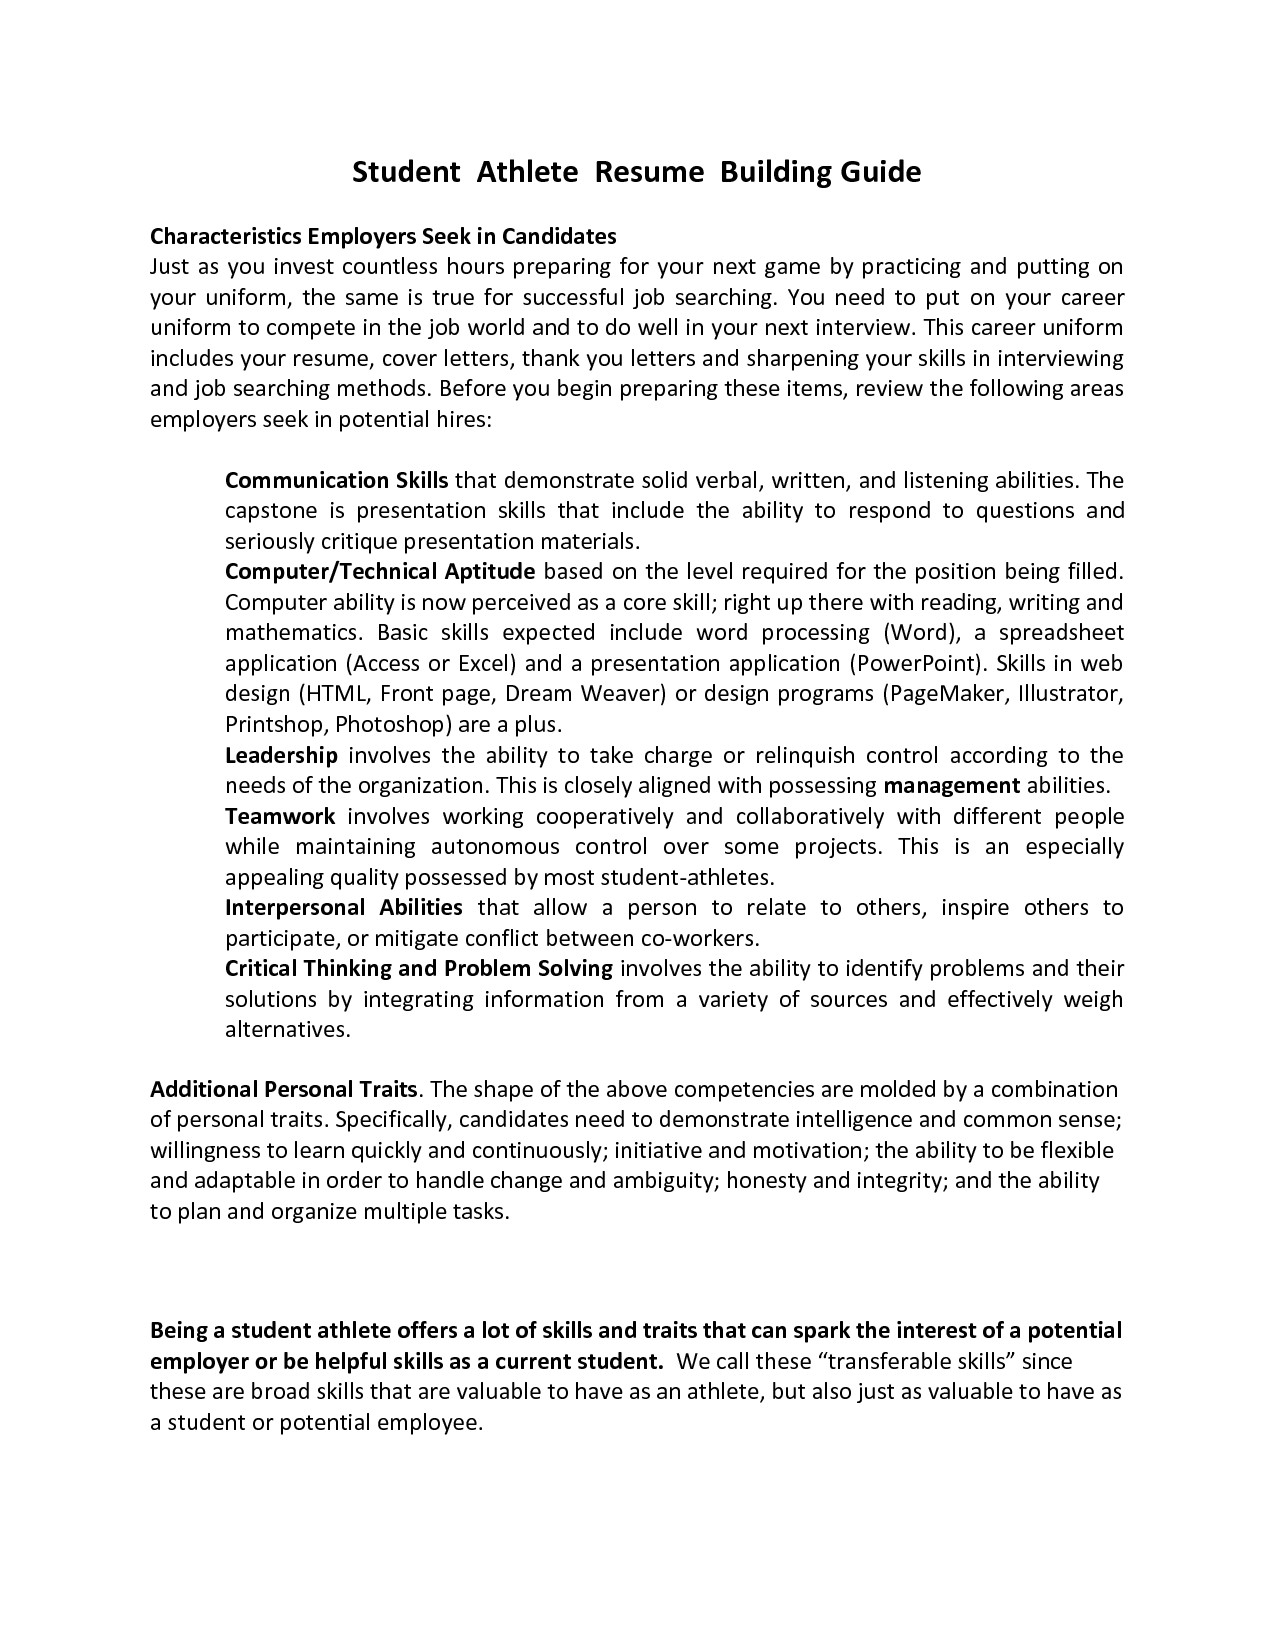 Student athlete Resume Template Resume for Kinesiology Student Marchigianadoc